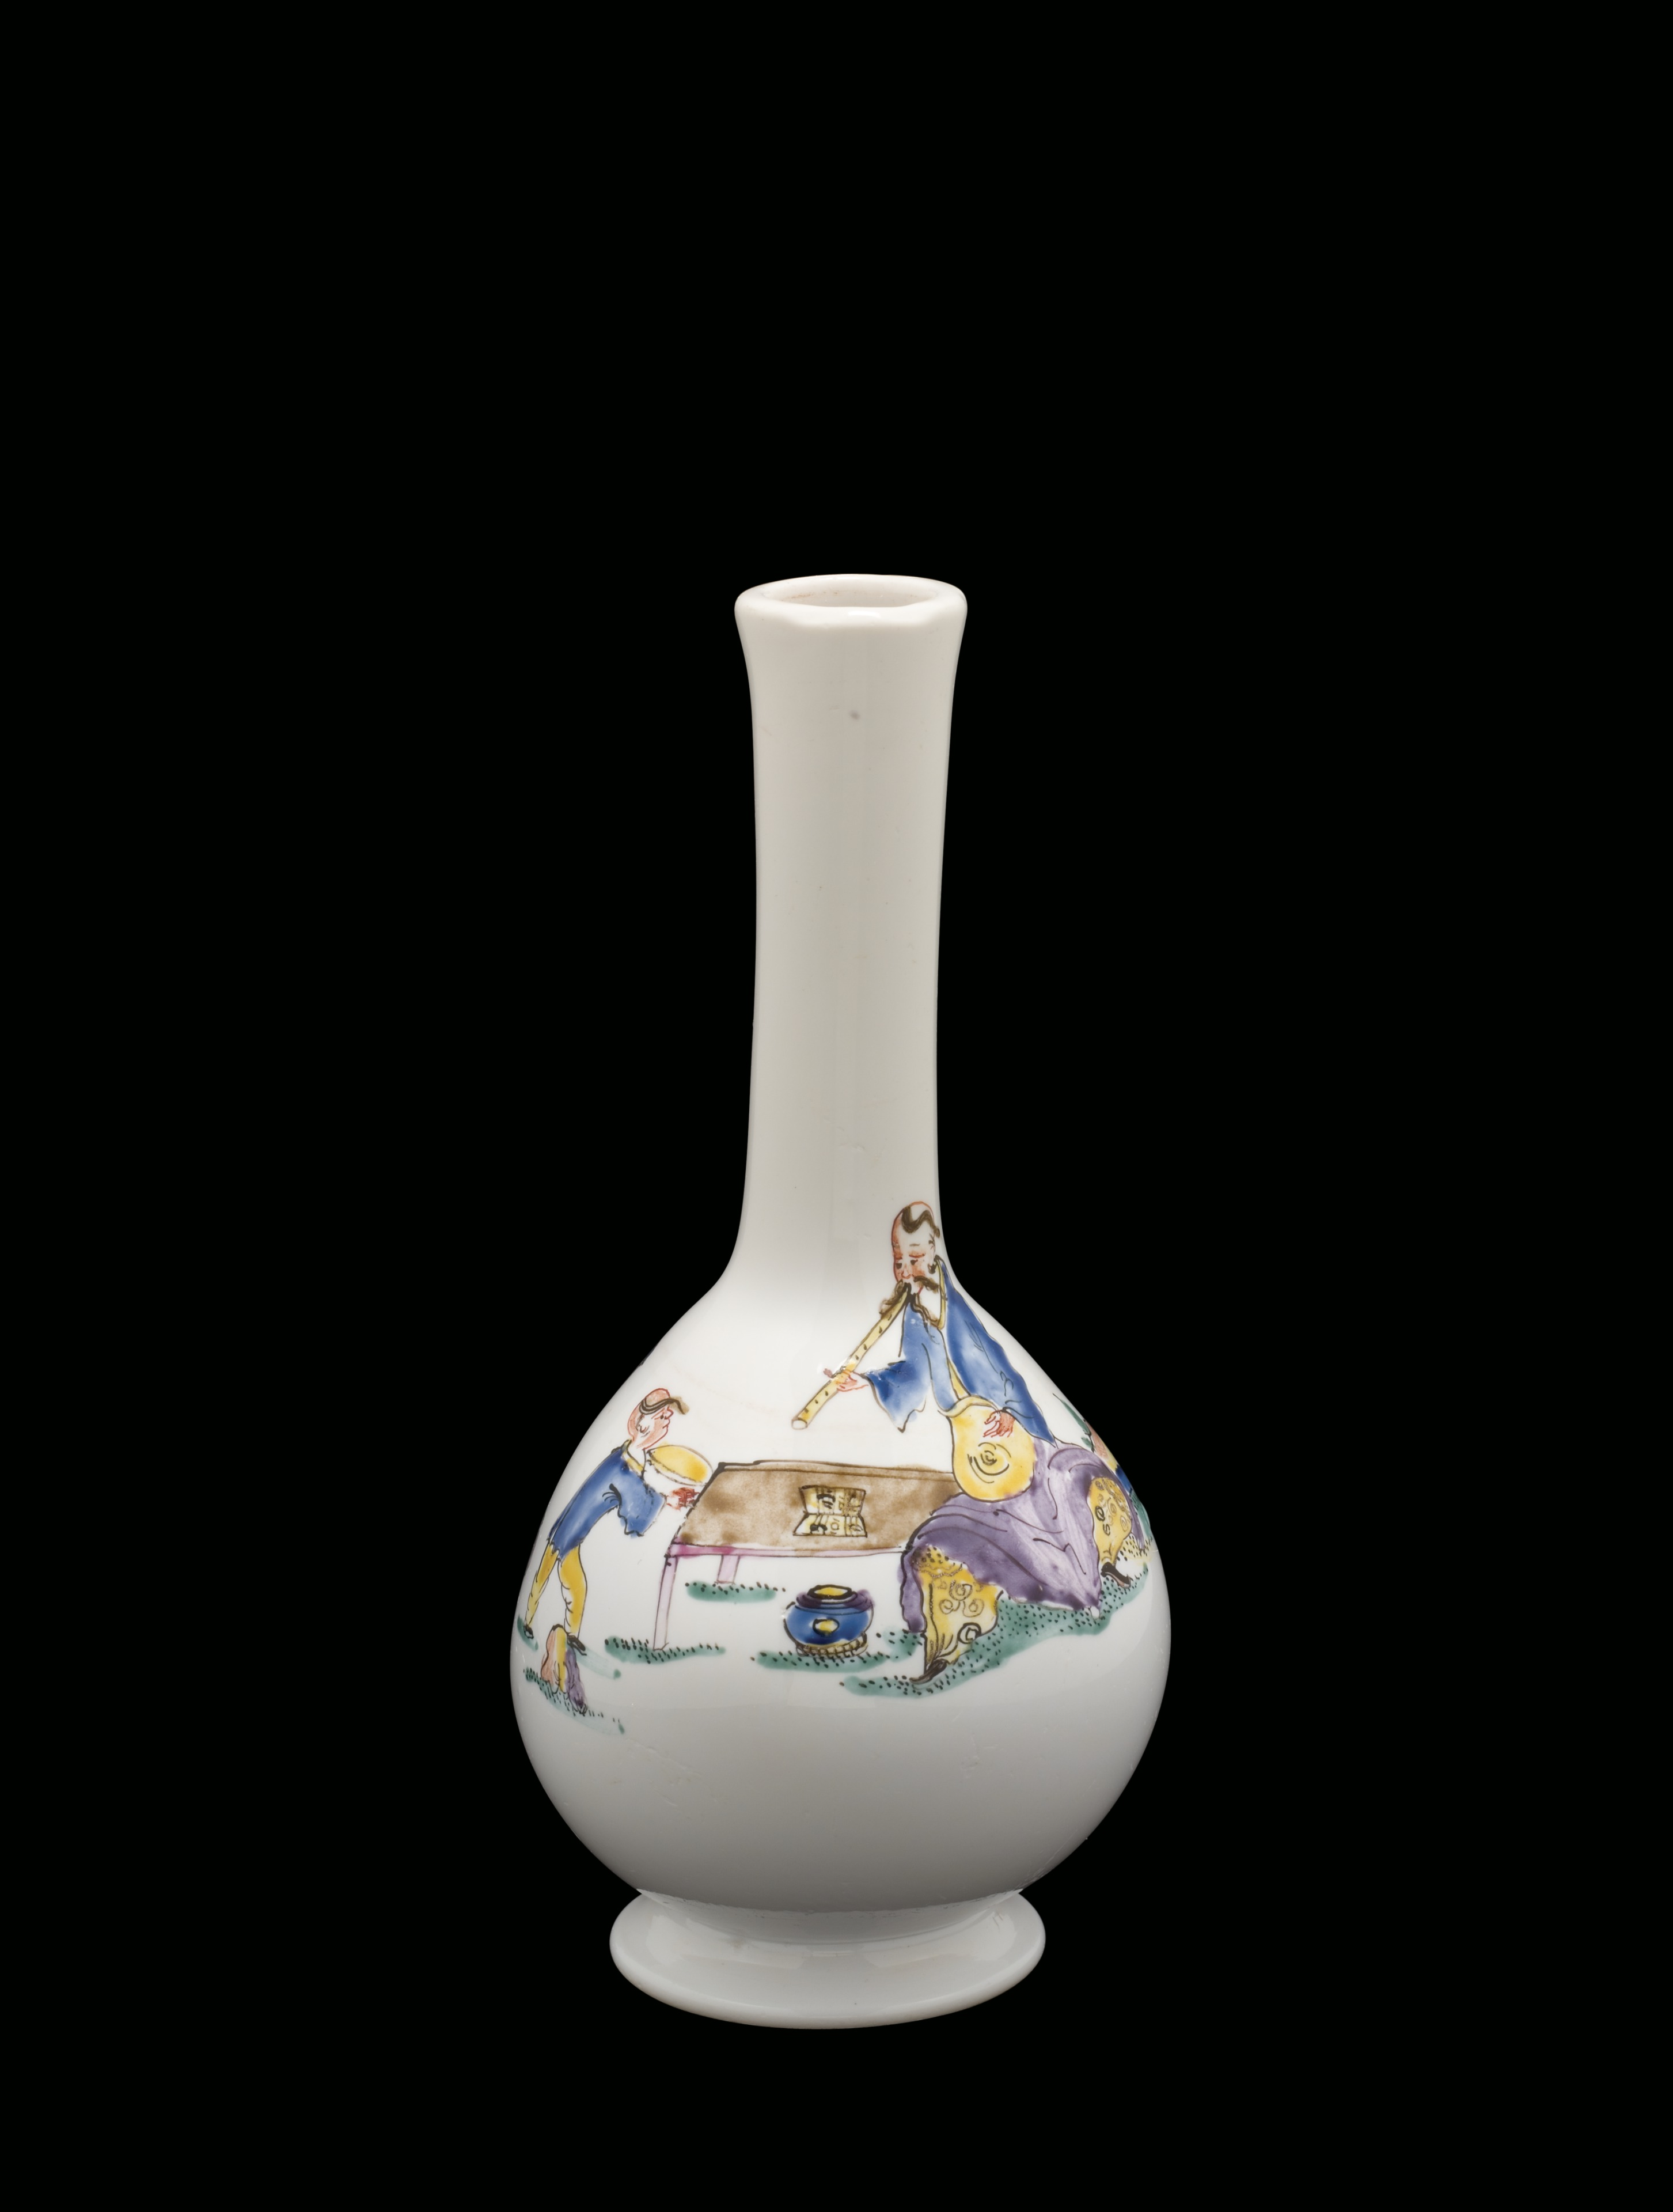 All about glass corning museum of glass 16 vase blown enameled england probably south staffordshire about 1755 1760 h 102 cm 86212 gift of helen mayer in memory of her husband john reviewsmspy